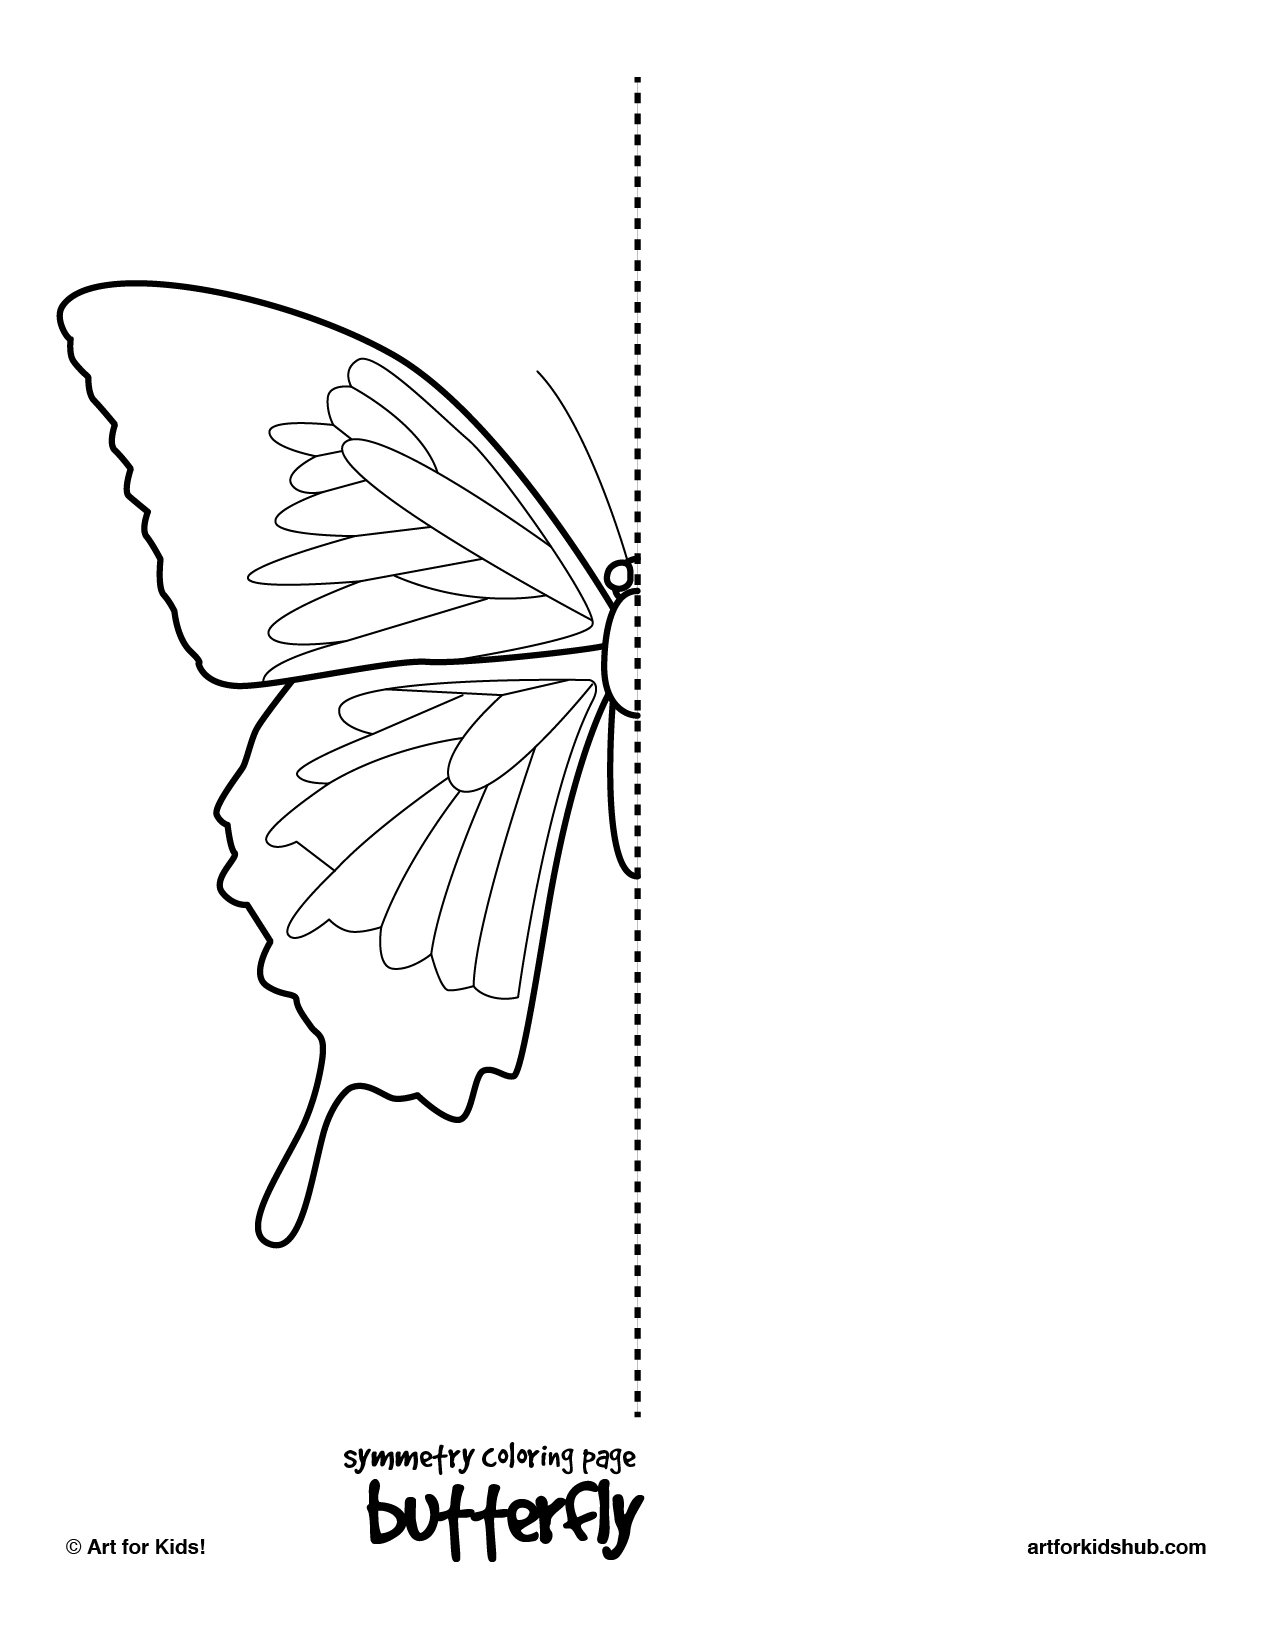 symmetry colouring sheets 6 best images of symmetry complete the drawing printables sheets symmetry colouring